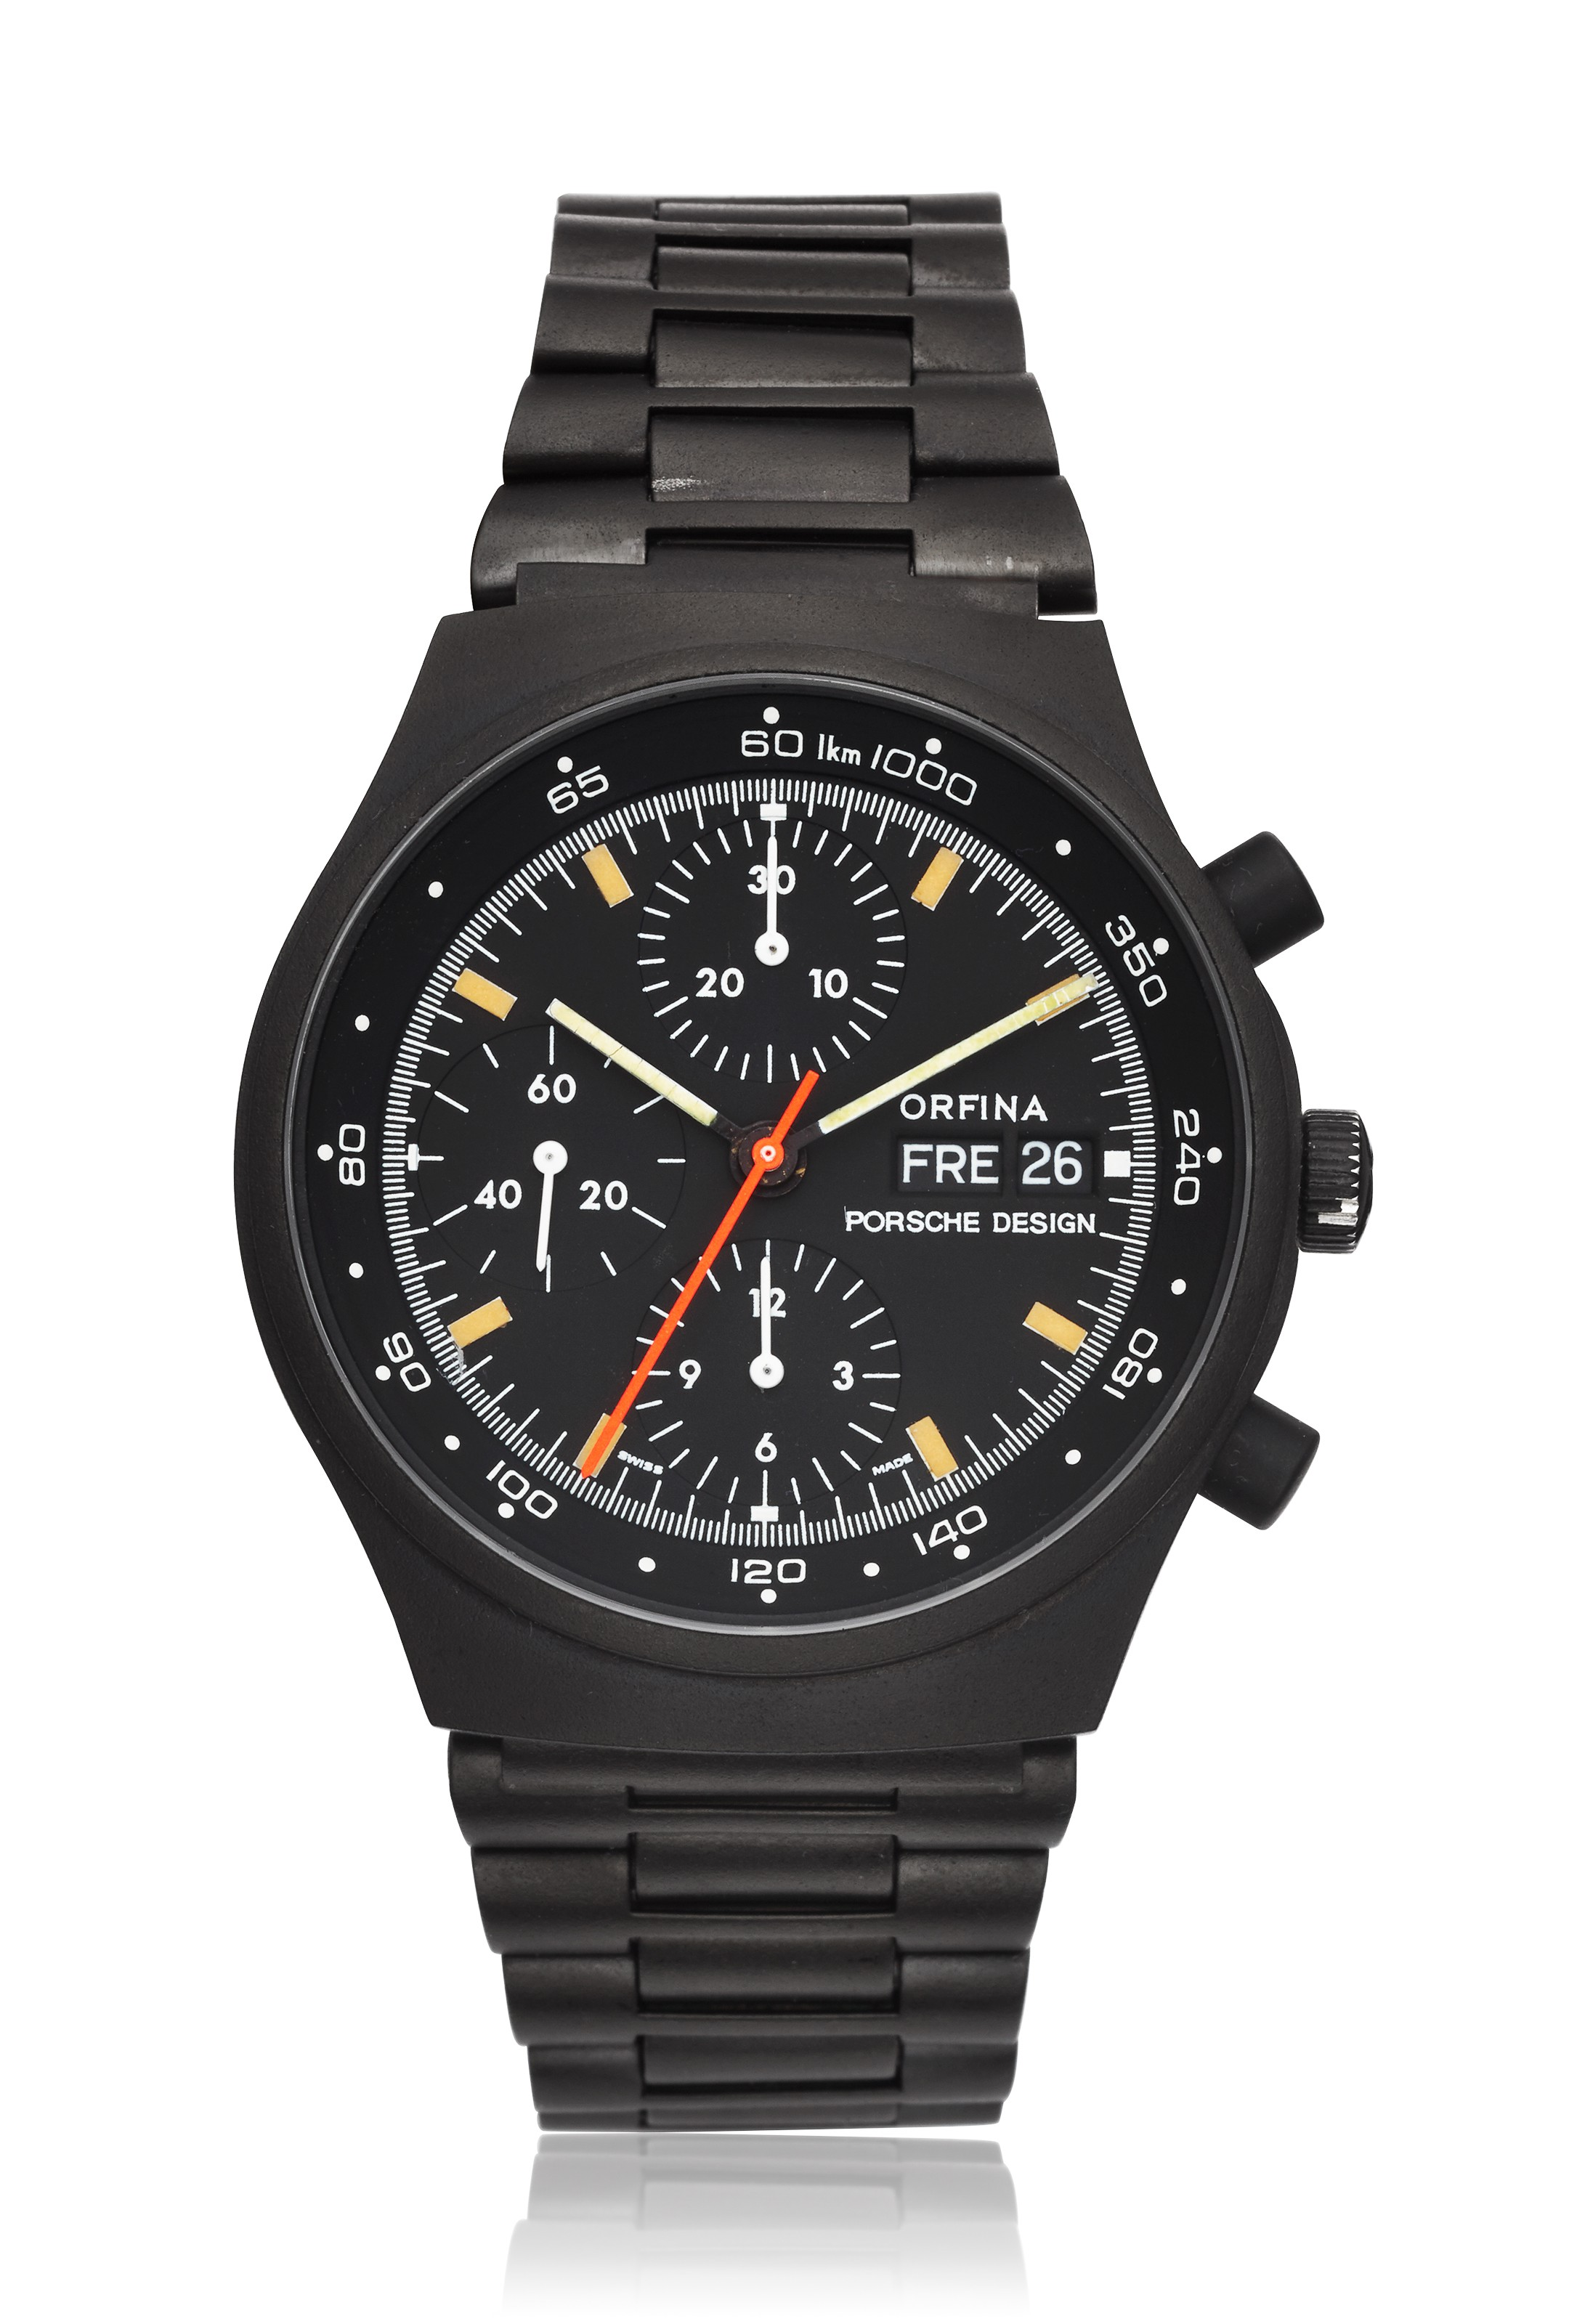 Orfina Pvd Porsche Design Chronograph Ref 7750 Christies